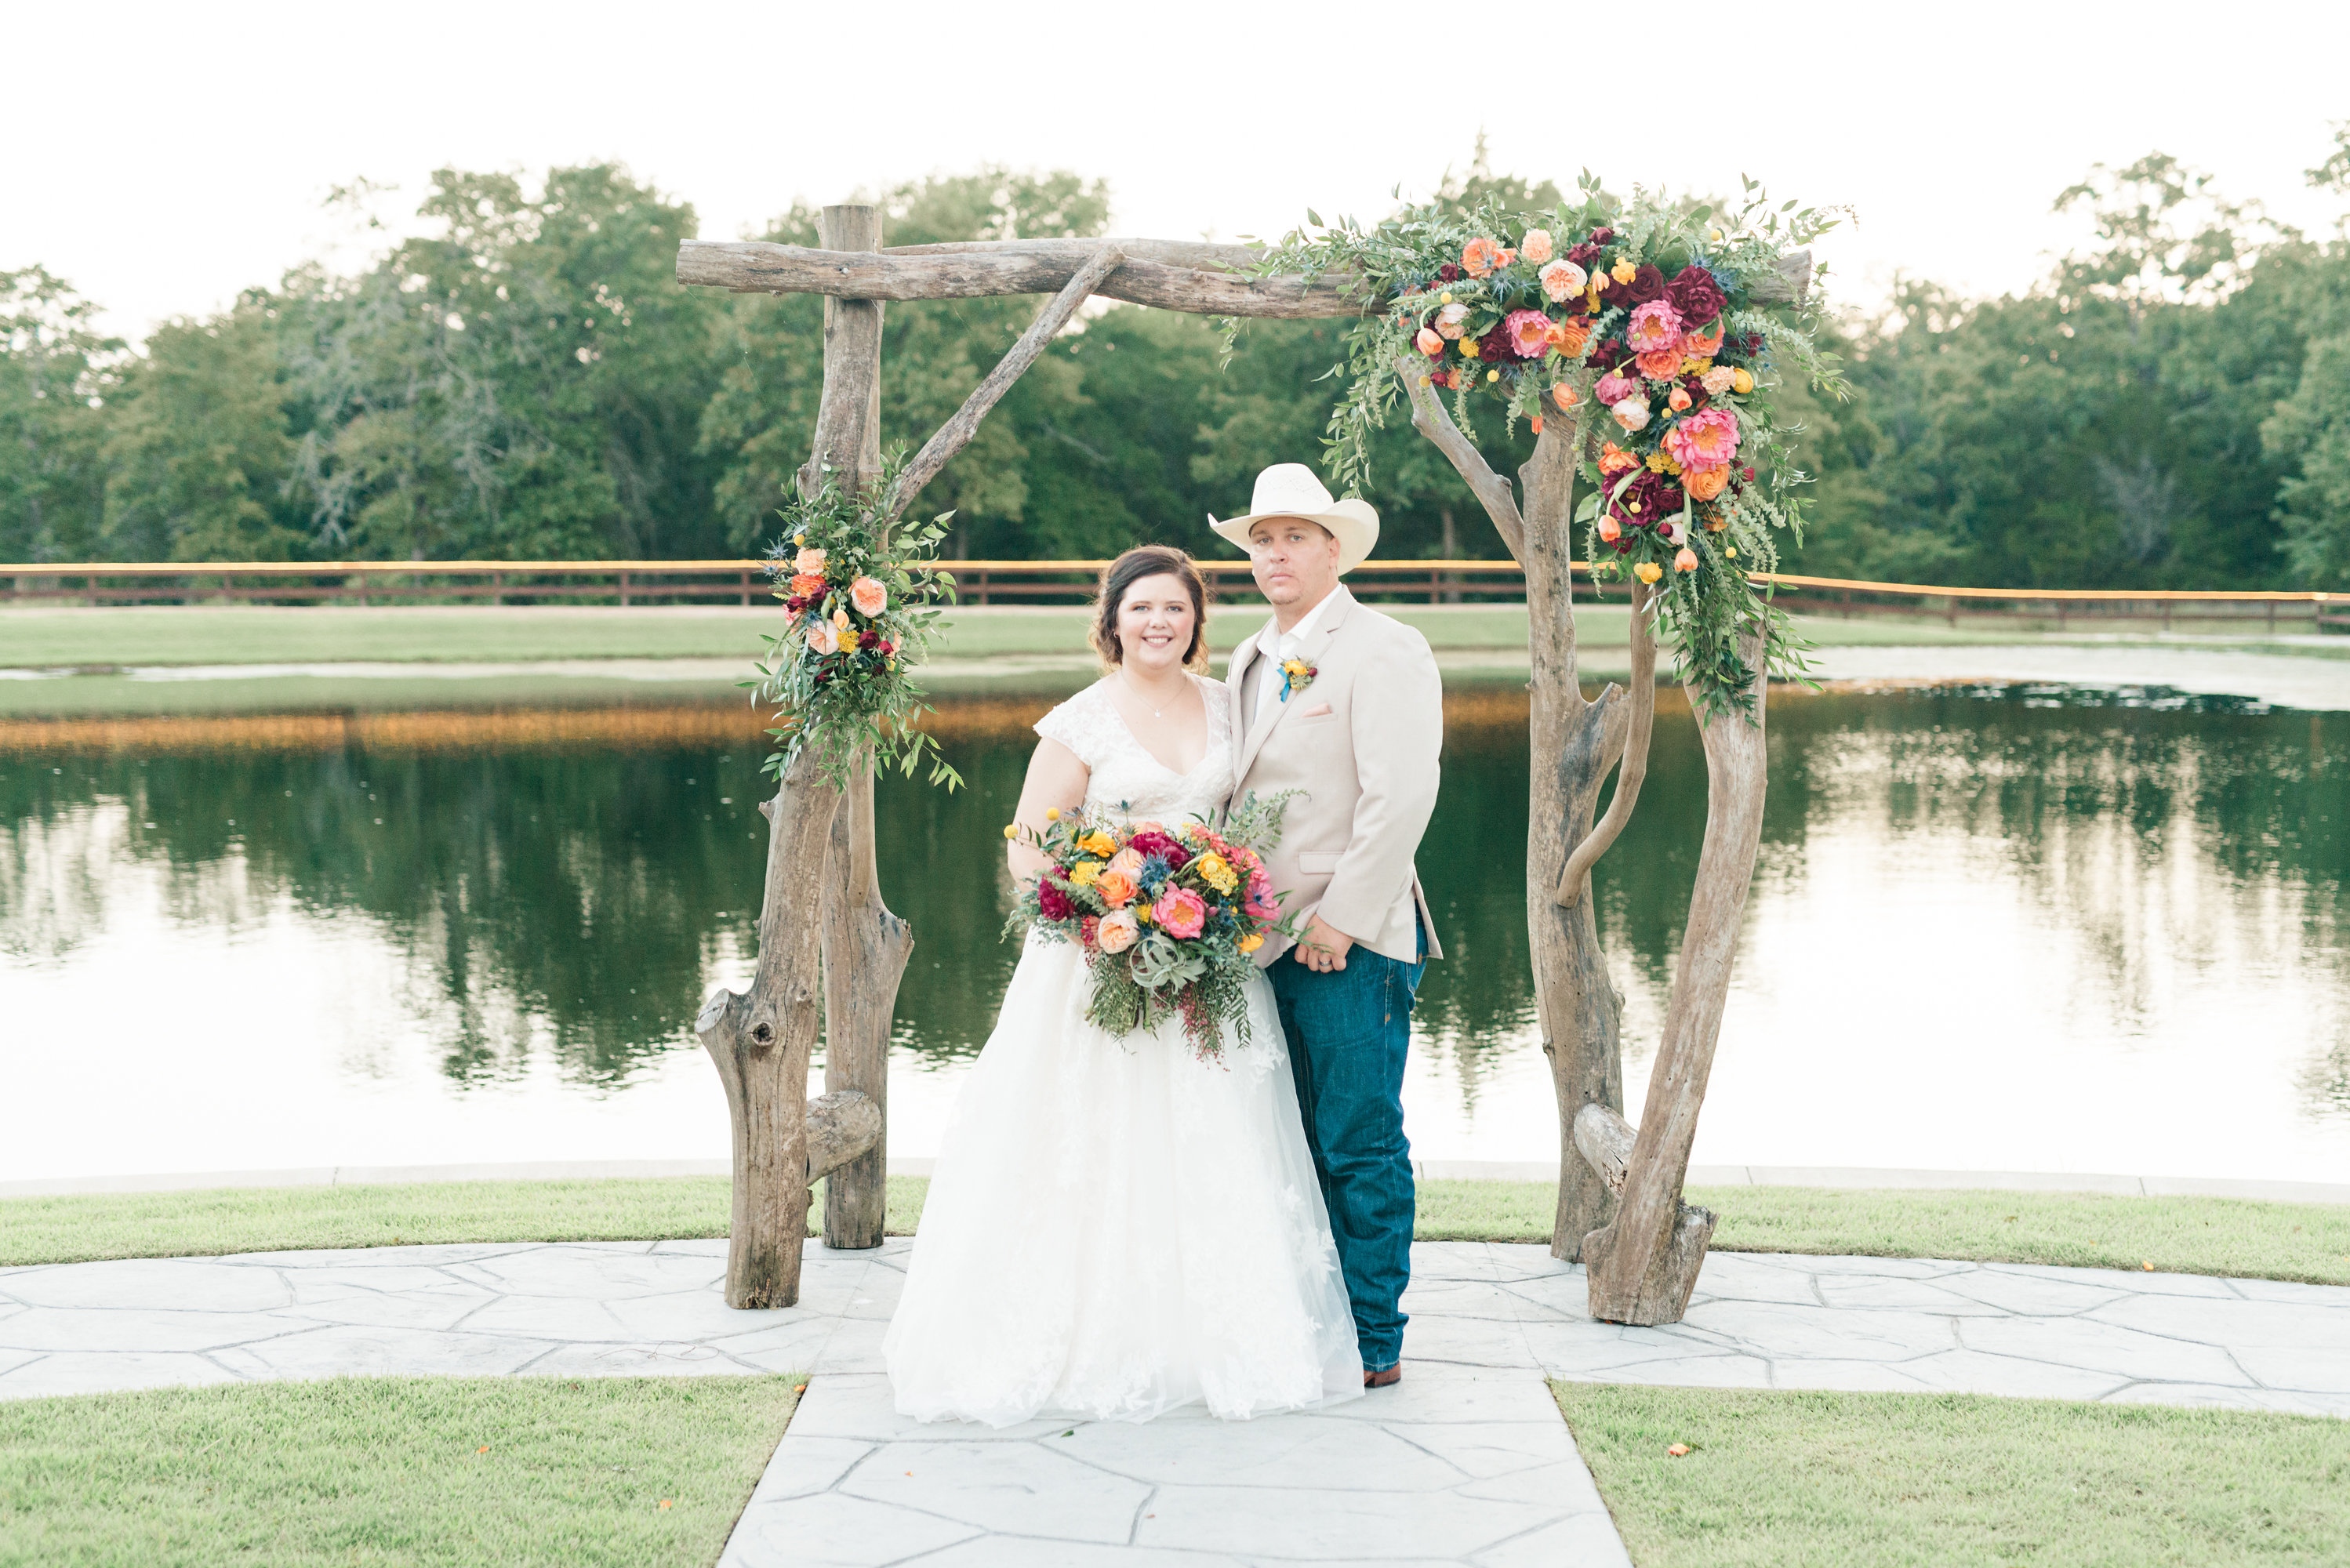 Wesley-Wedding-Ten23-Photography-716